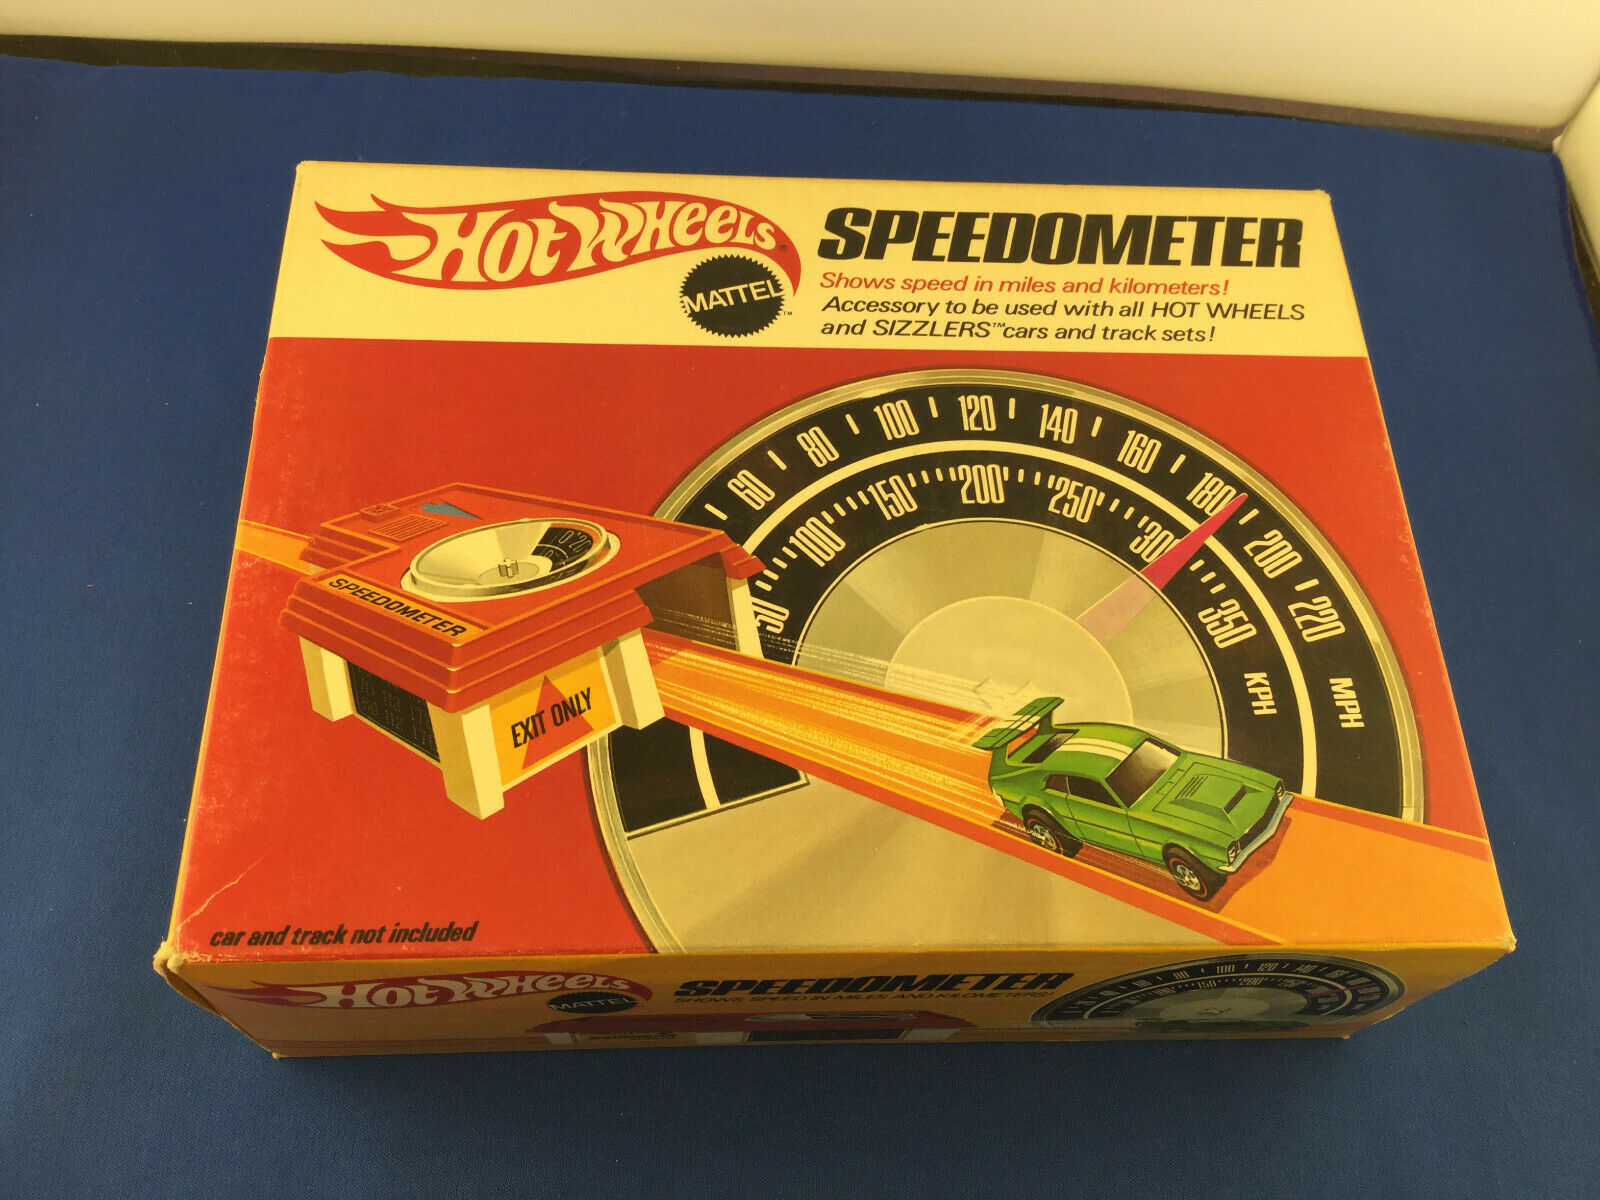 Vintage 1969 Mattel Hot Wheels Speedometer Sealed in Box